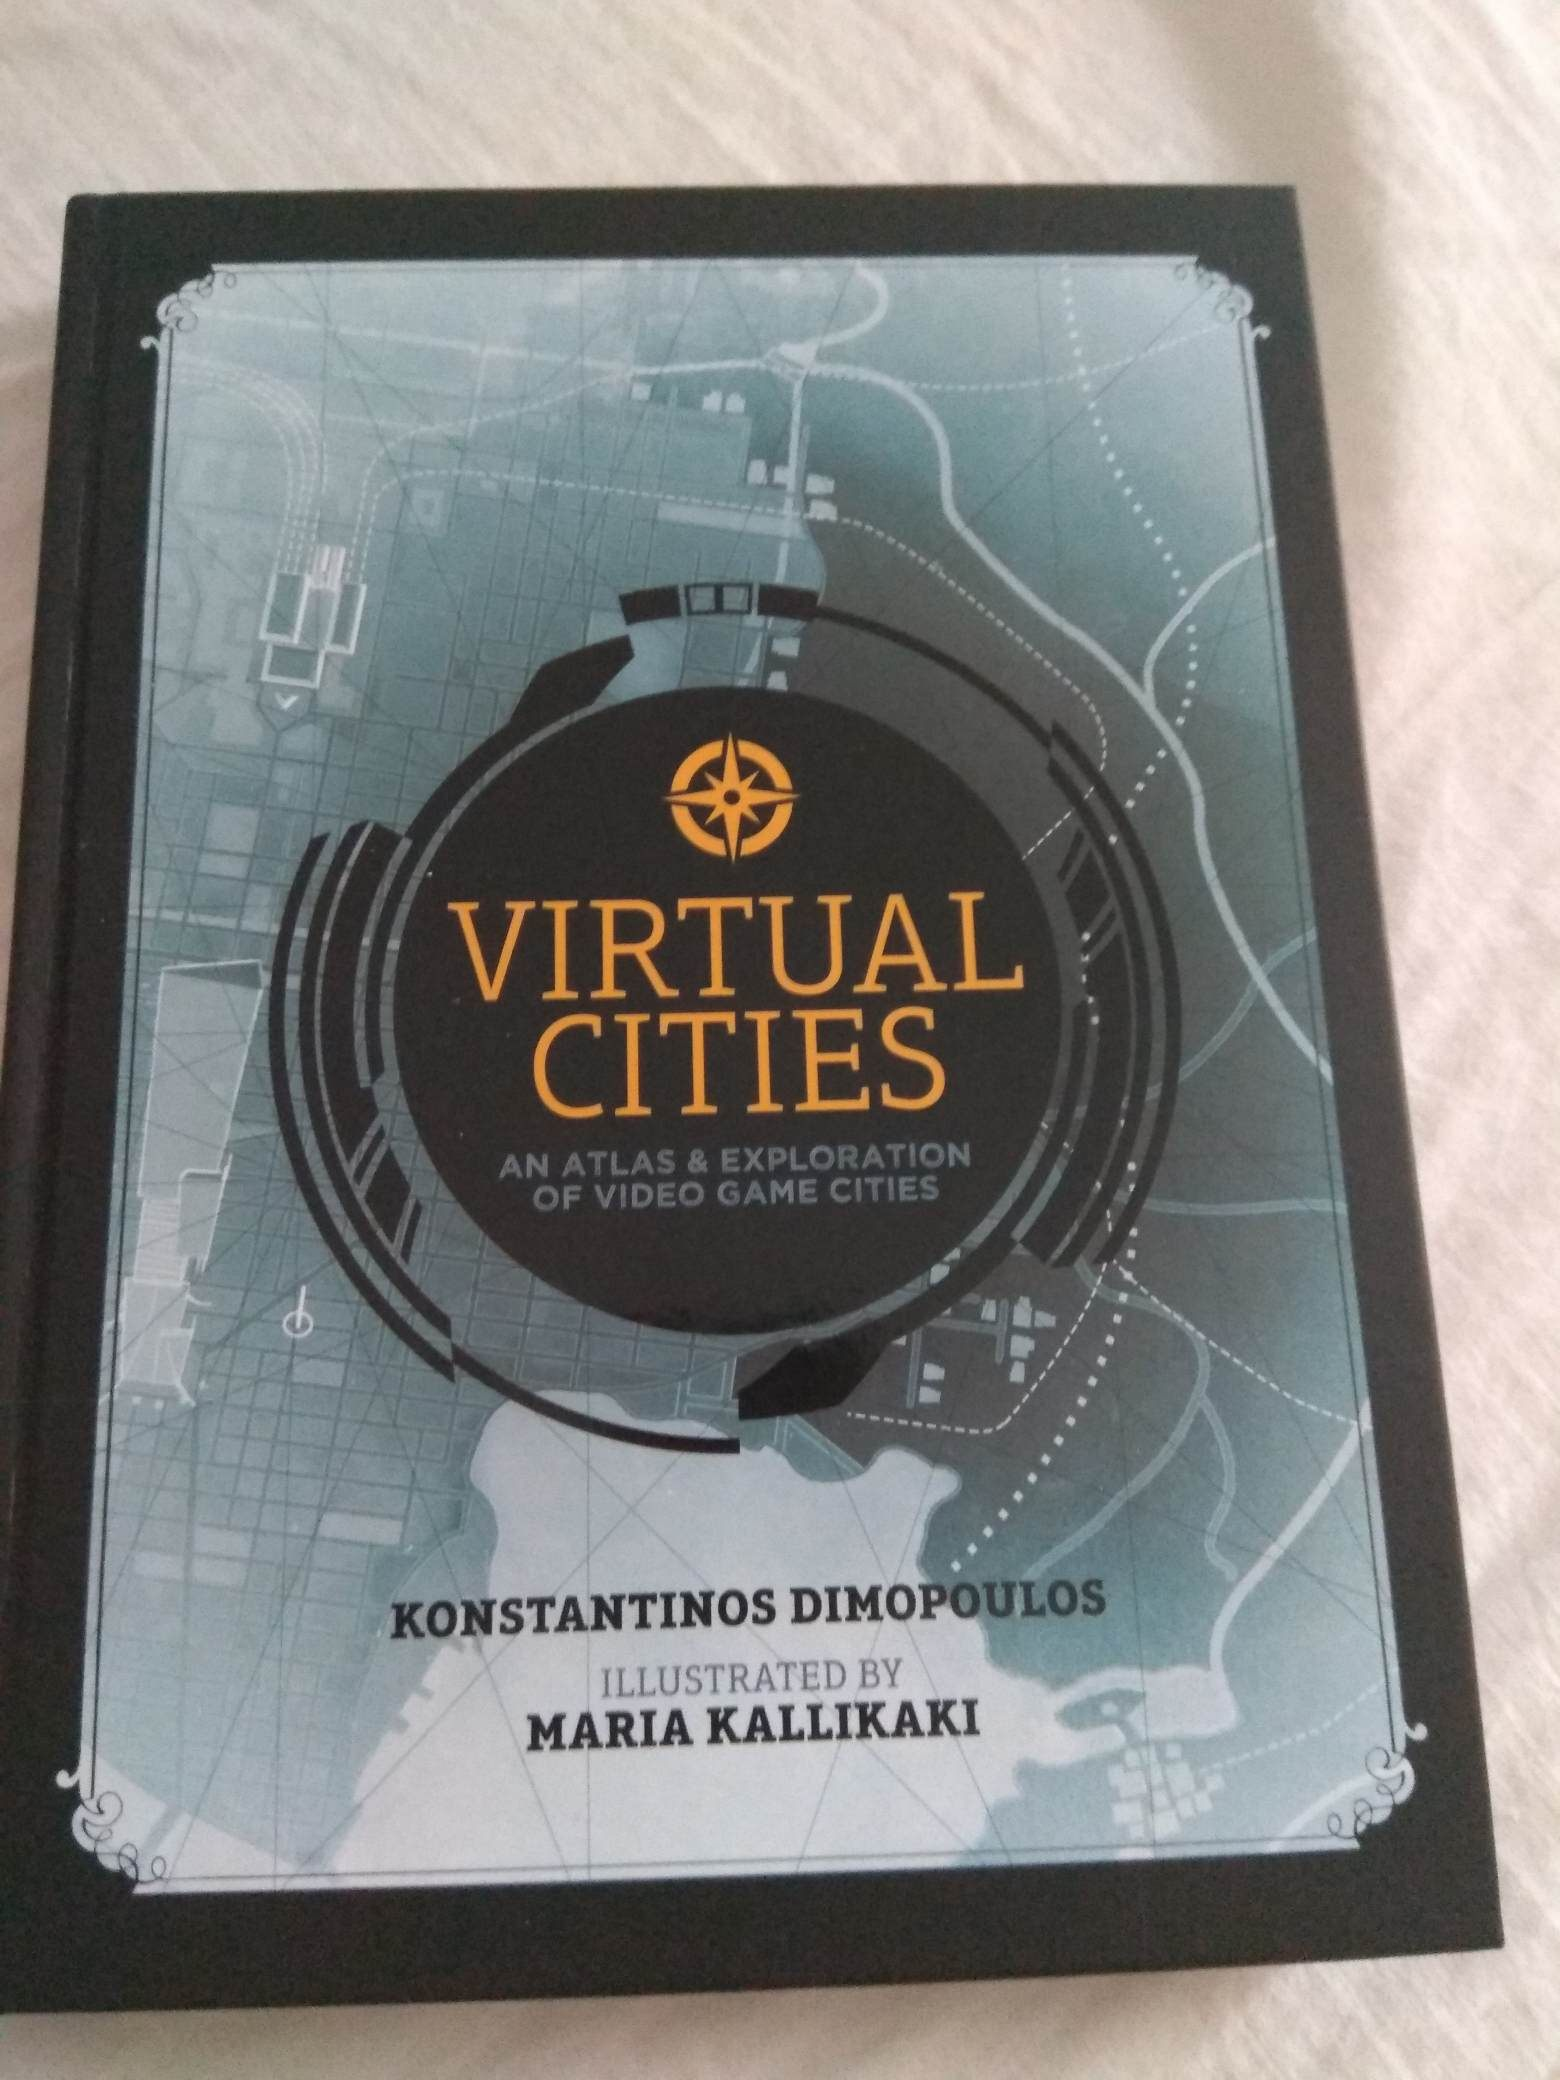 Recenze knihy Virtual Cities: An Atlas & Exploration of Video Game Cities 126191210 1522069937984859 7550998269402955207 n